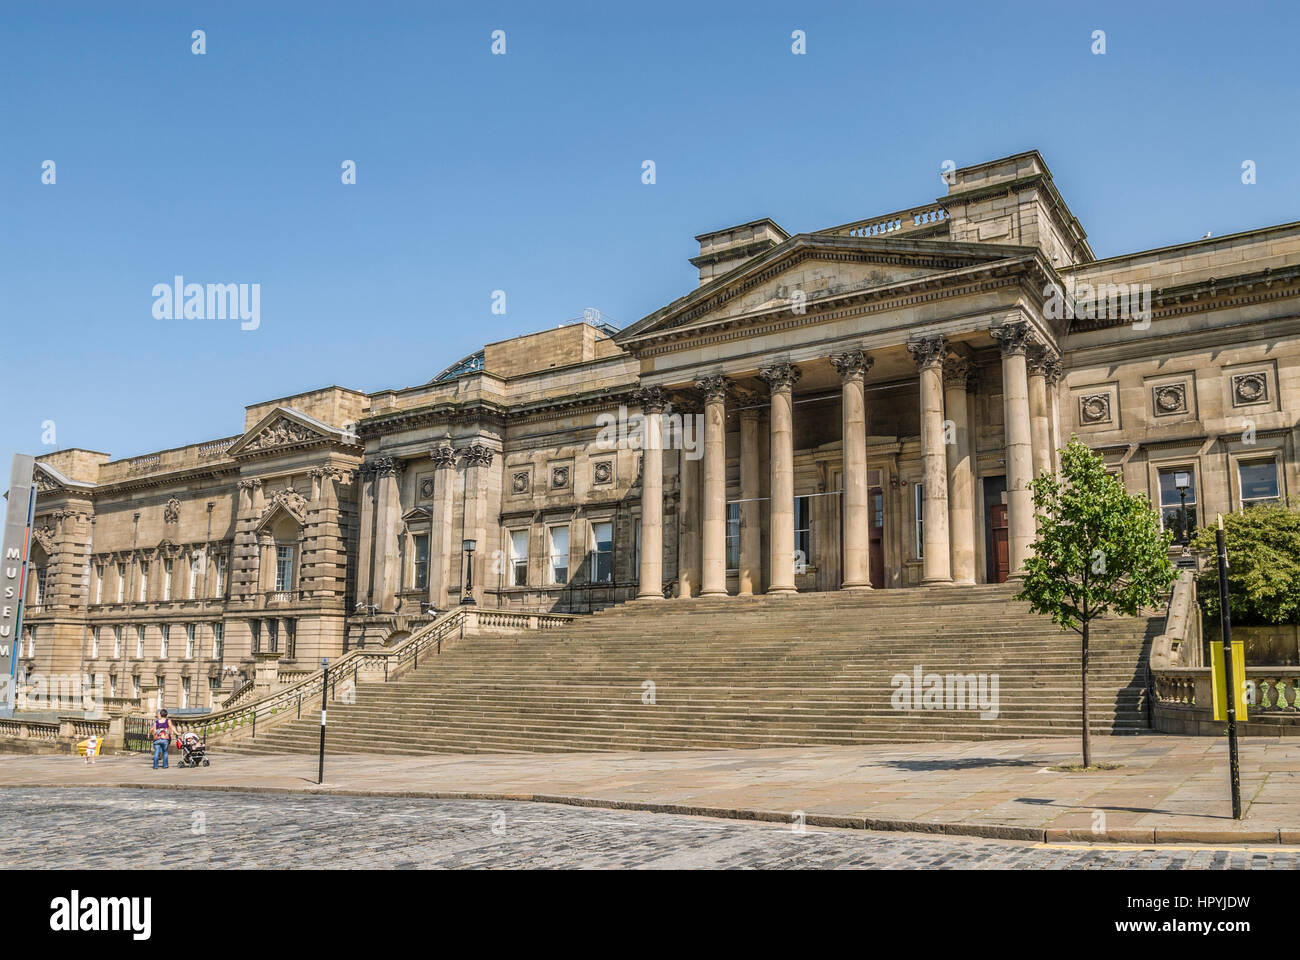 The Walker Art Gallery is an art gallery in Liverpool, which houses one of the largest art collections in England. - Stock Image